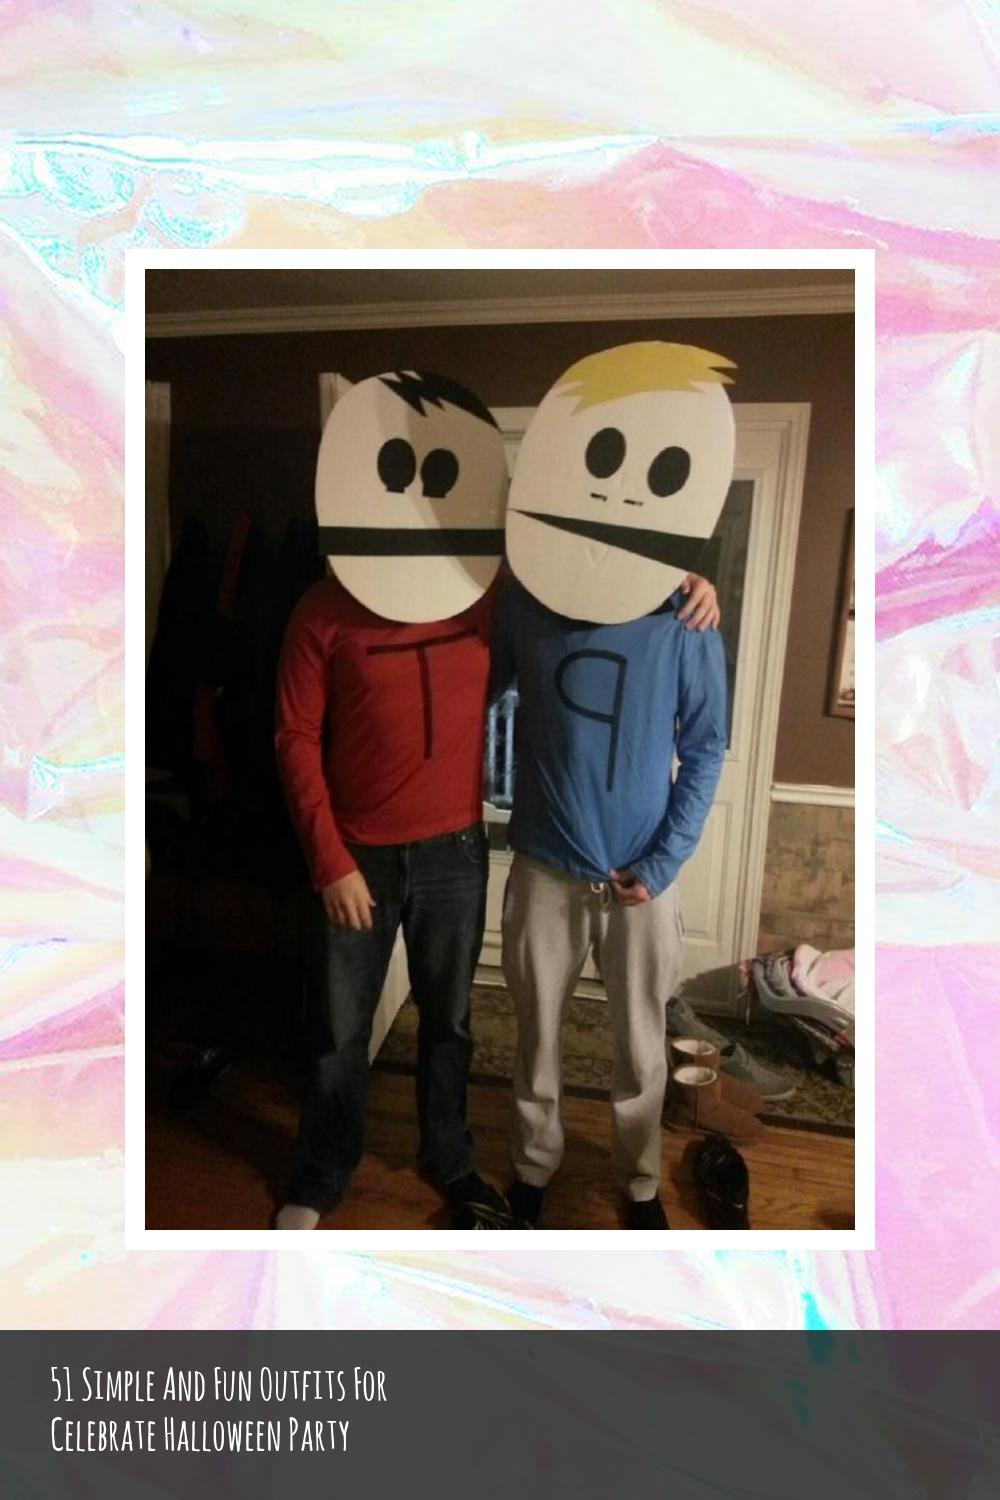 51 Simple And Fun Outfits For Celebrate Halloween Party 12